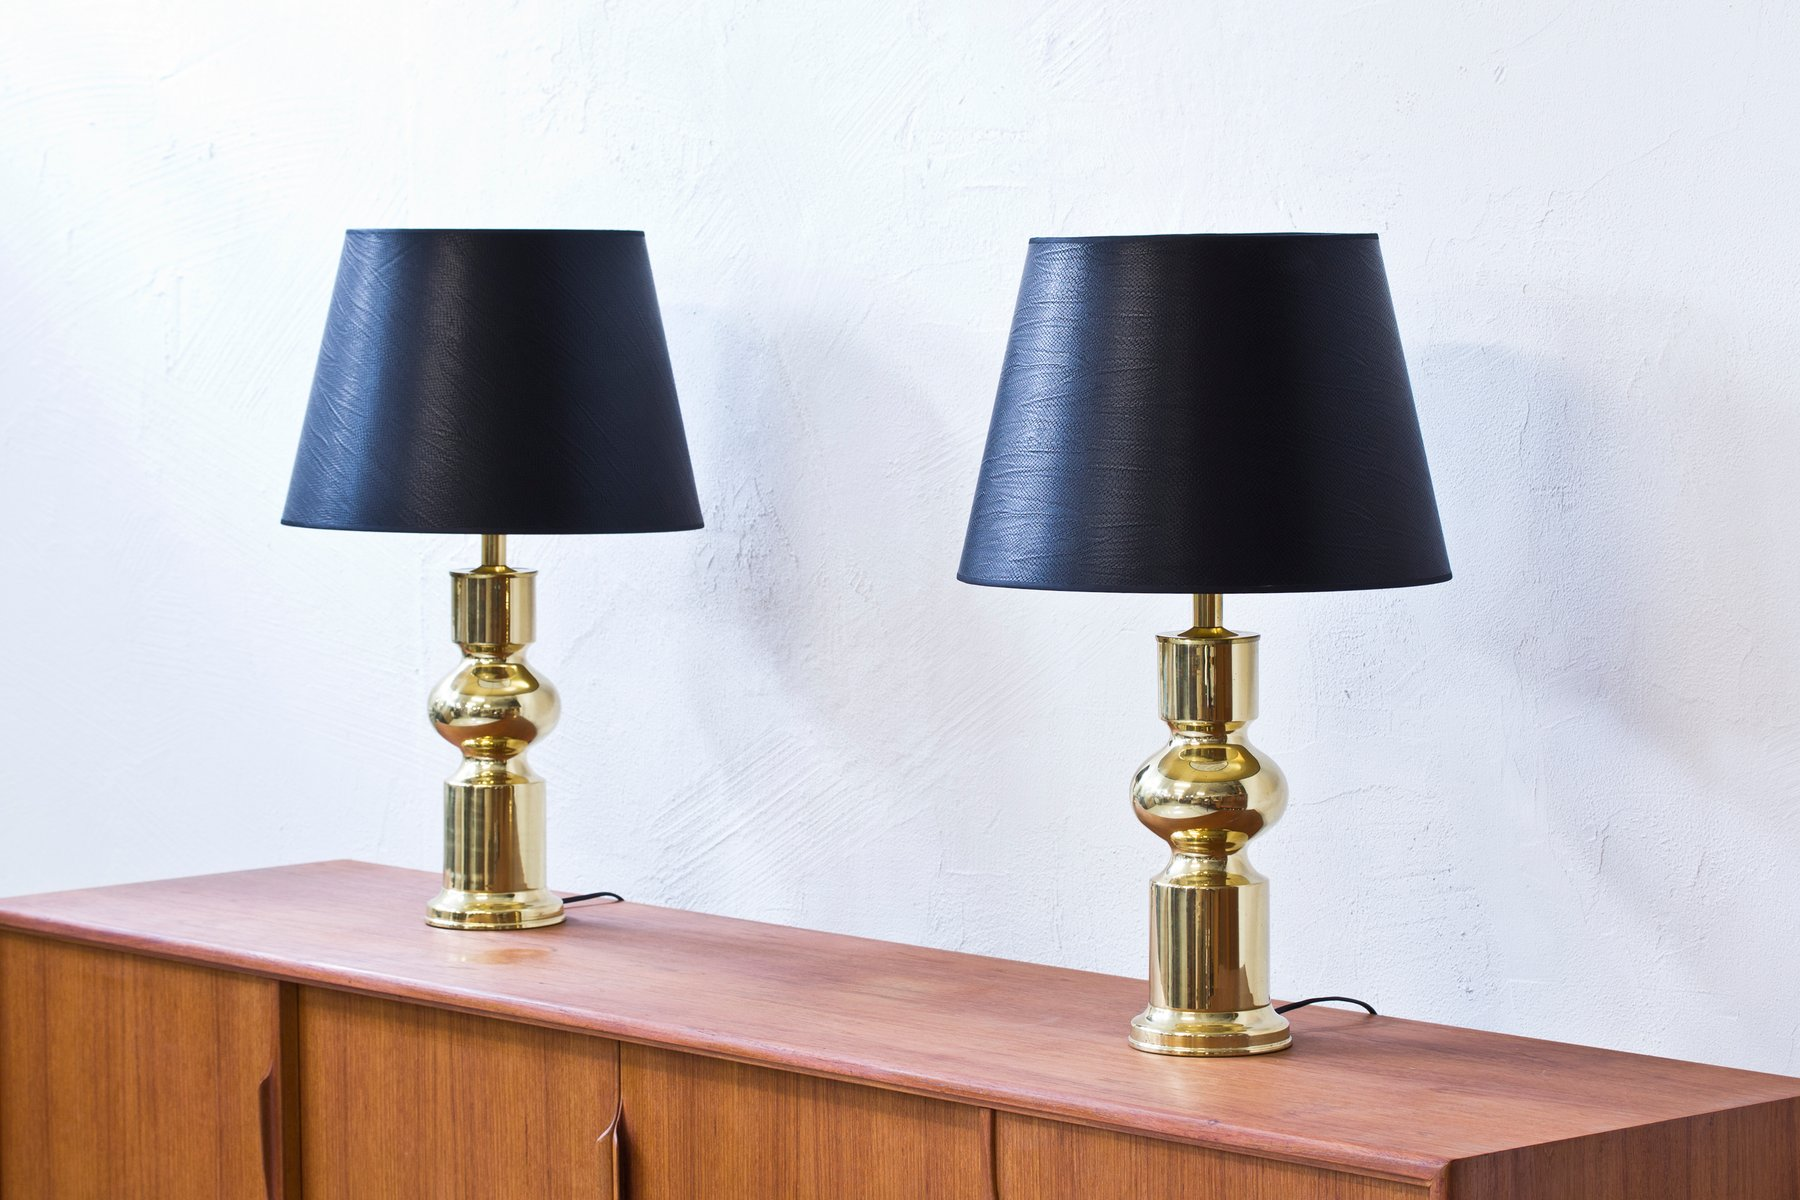 Swedish Brass Table Lamps from Aneta 1960s Set of 2 for sale at